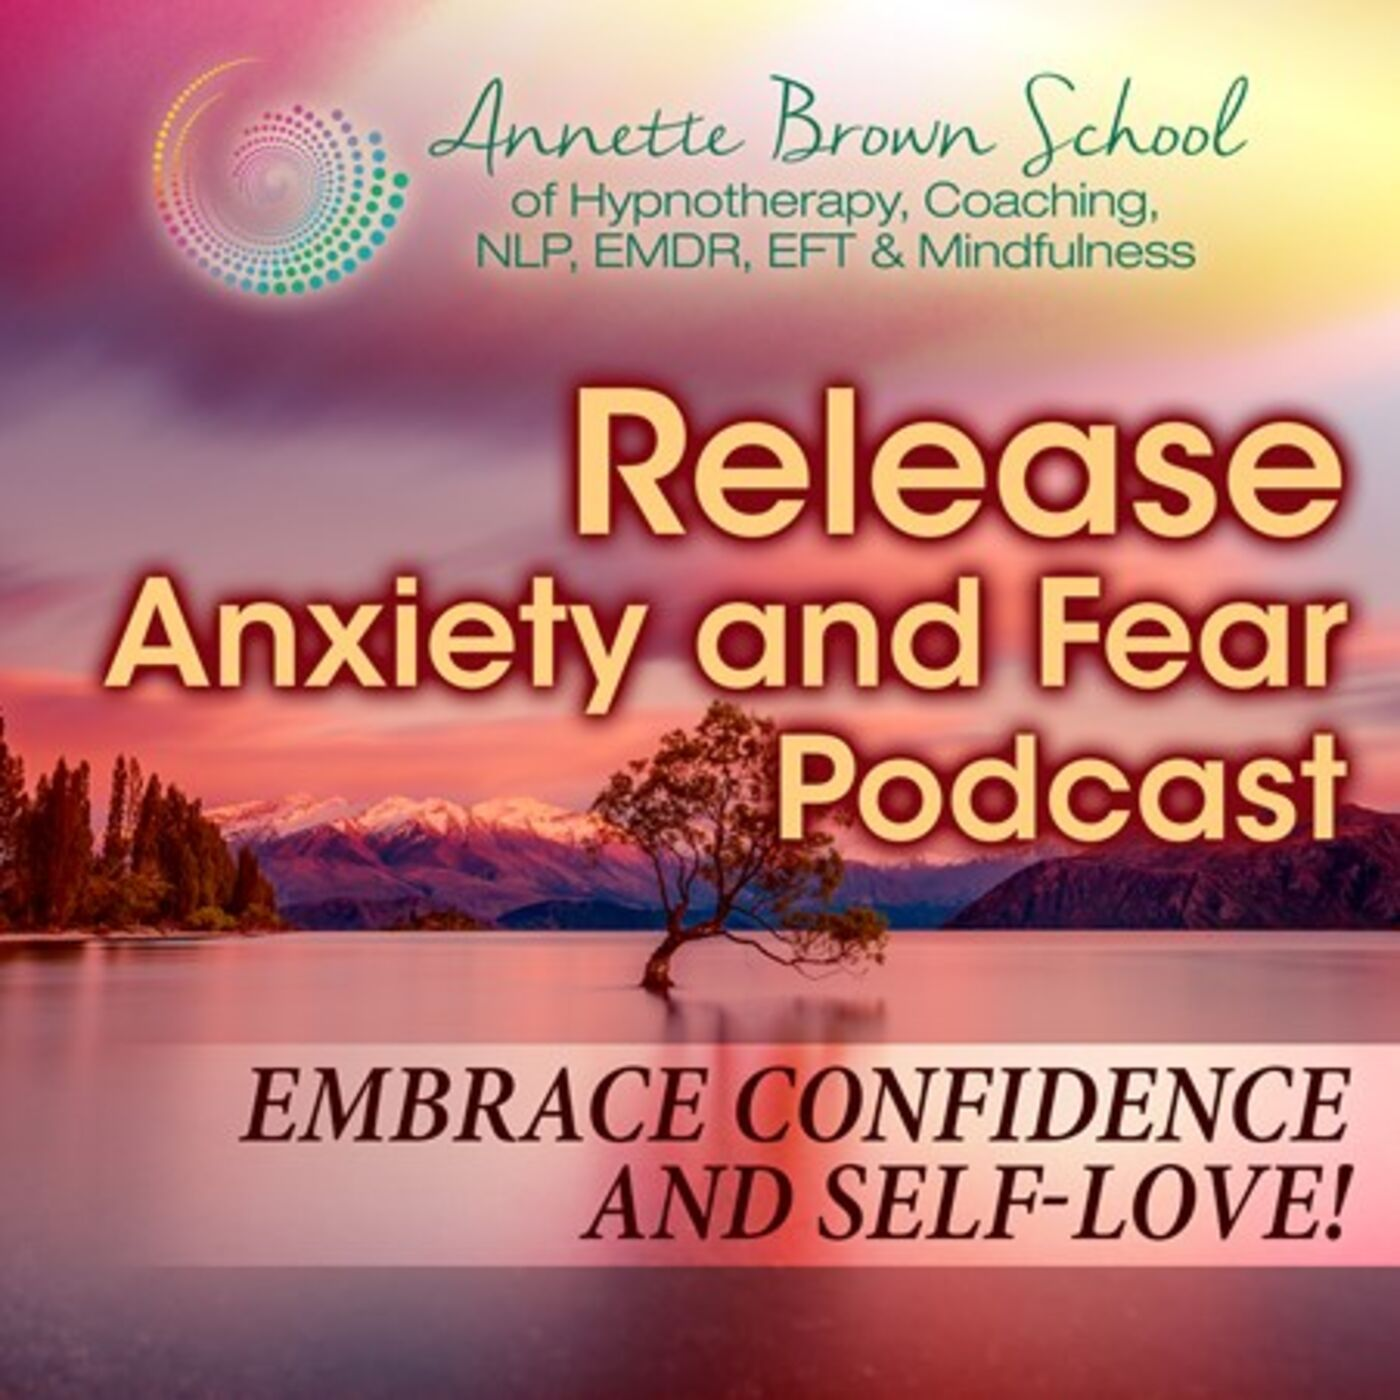 Release Anxiety and Fear to Embrace Confidence and Self-Love!